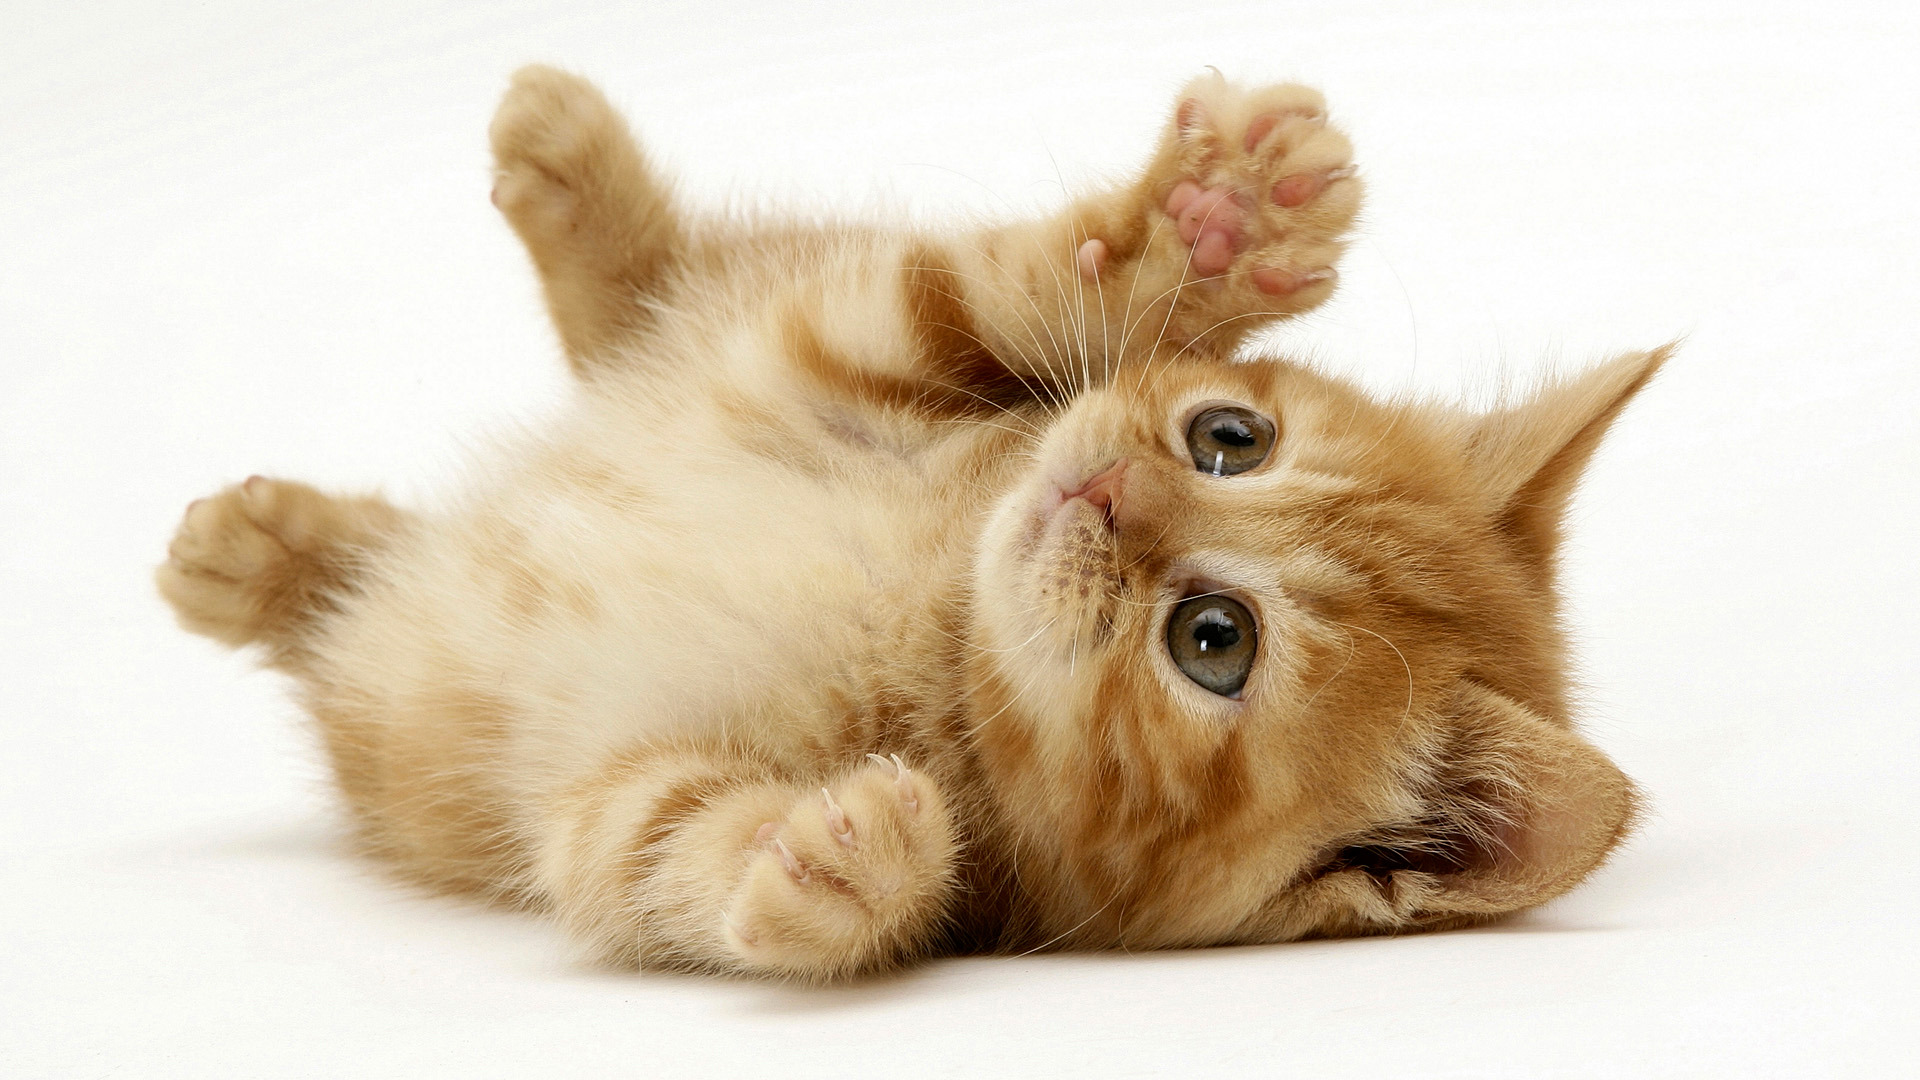 Playful Small Red Kitten 434.56 Kb